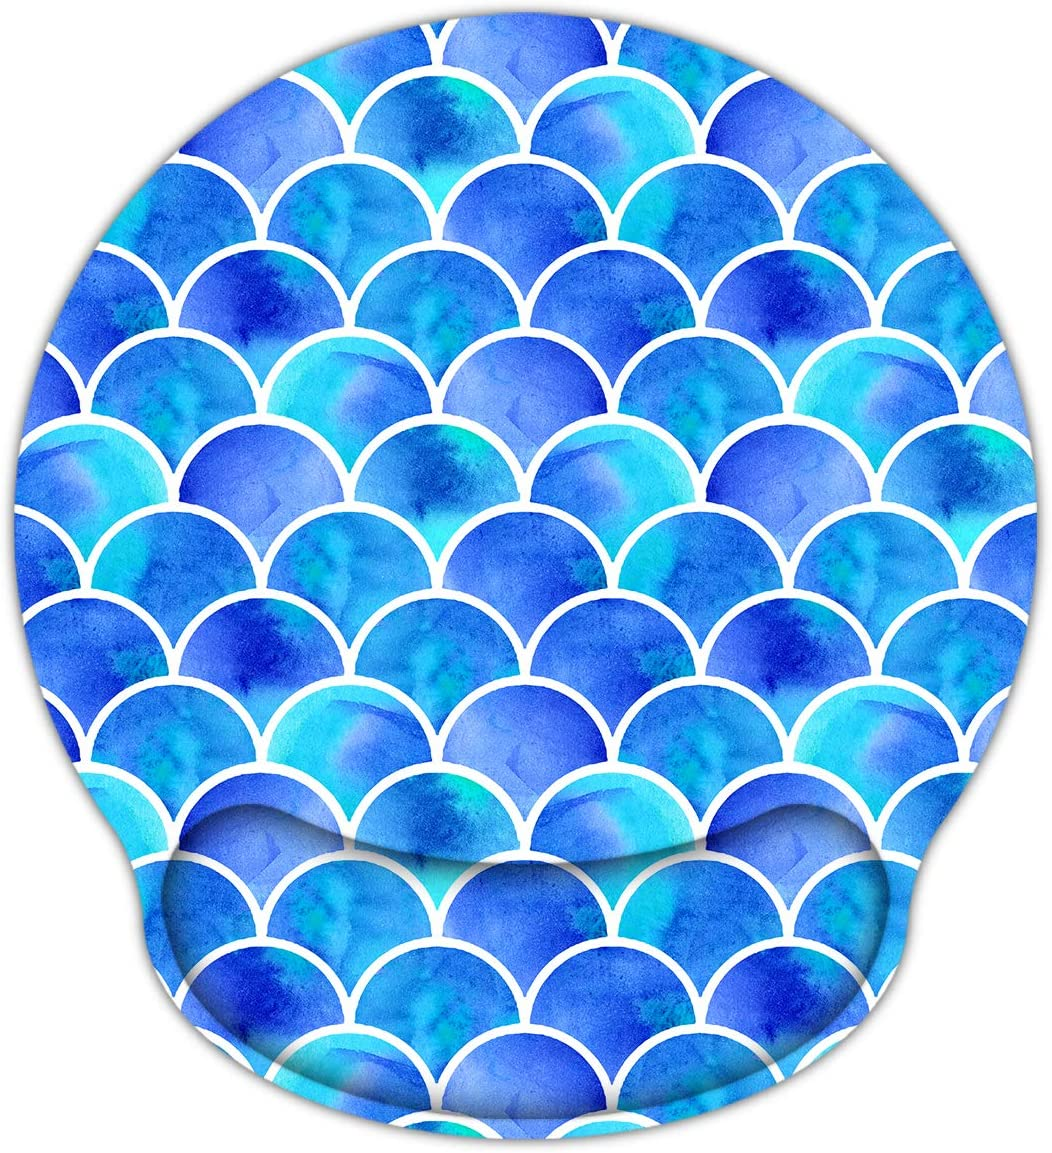 HAPLIVES Memory Foam Non Slip Mouse Pad Wrist Rest for Office, Computer, Laptop & Mac - Durable & Comfortable & Lightweight for Easy Typing & Pain Relief-Ergonomic Support (Blue Mermaid)